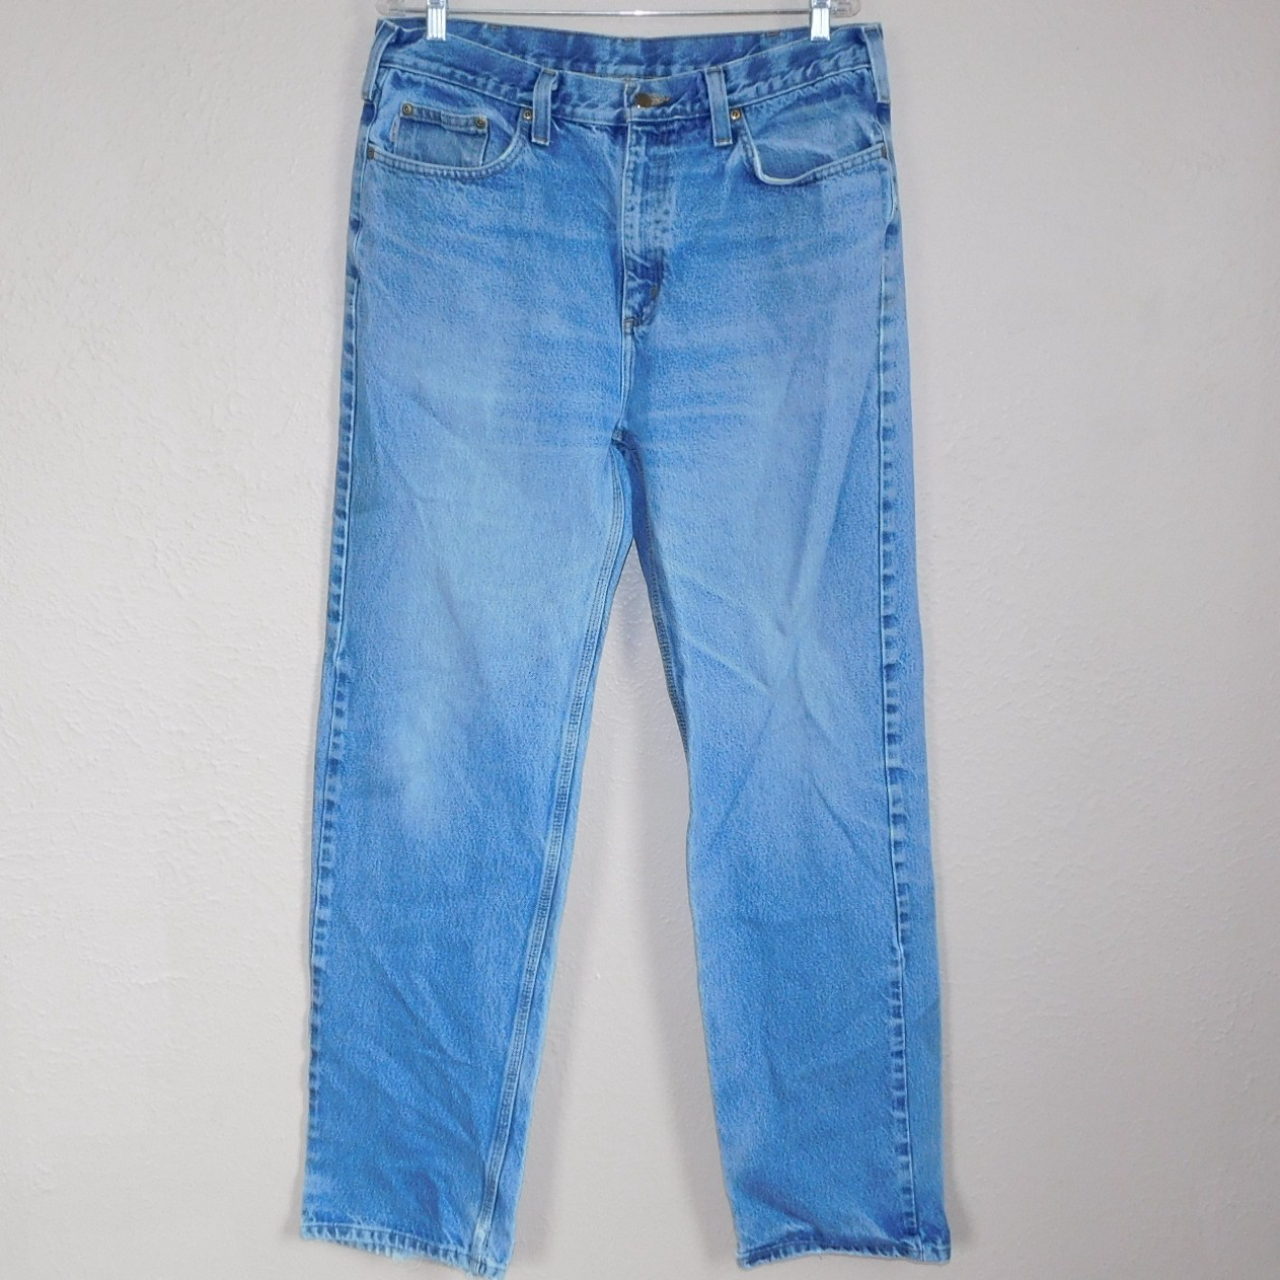 Product Image 1 - Pre-Loved Faded Relaxed Fit Carhartt